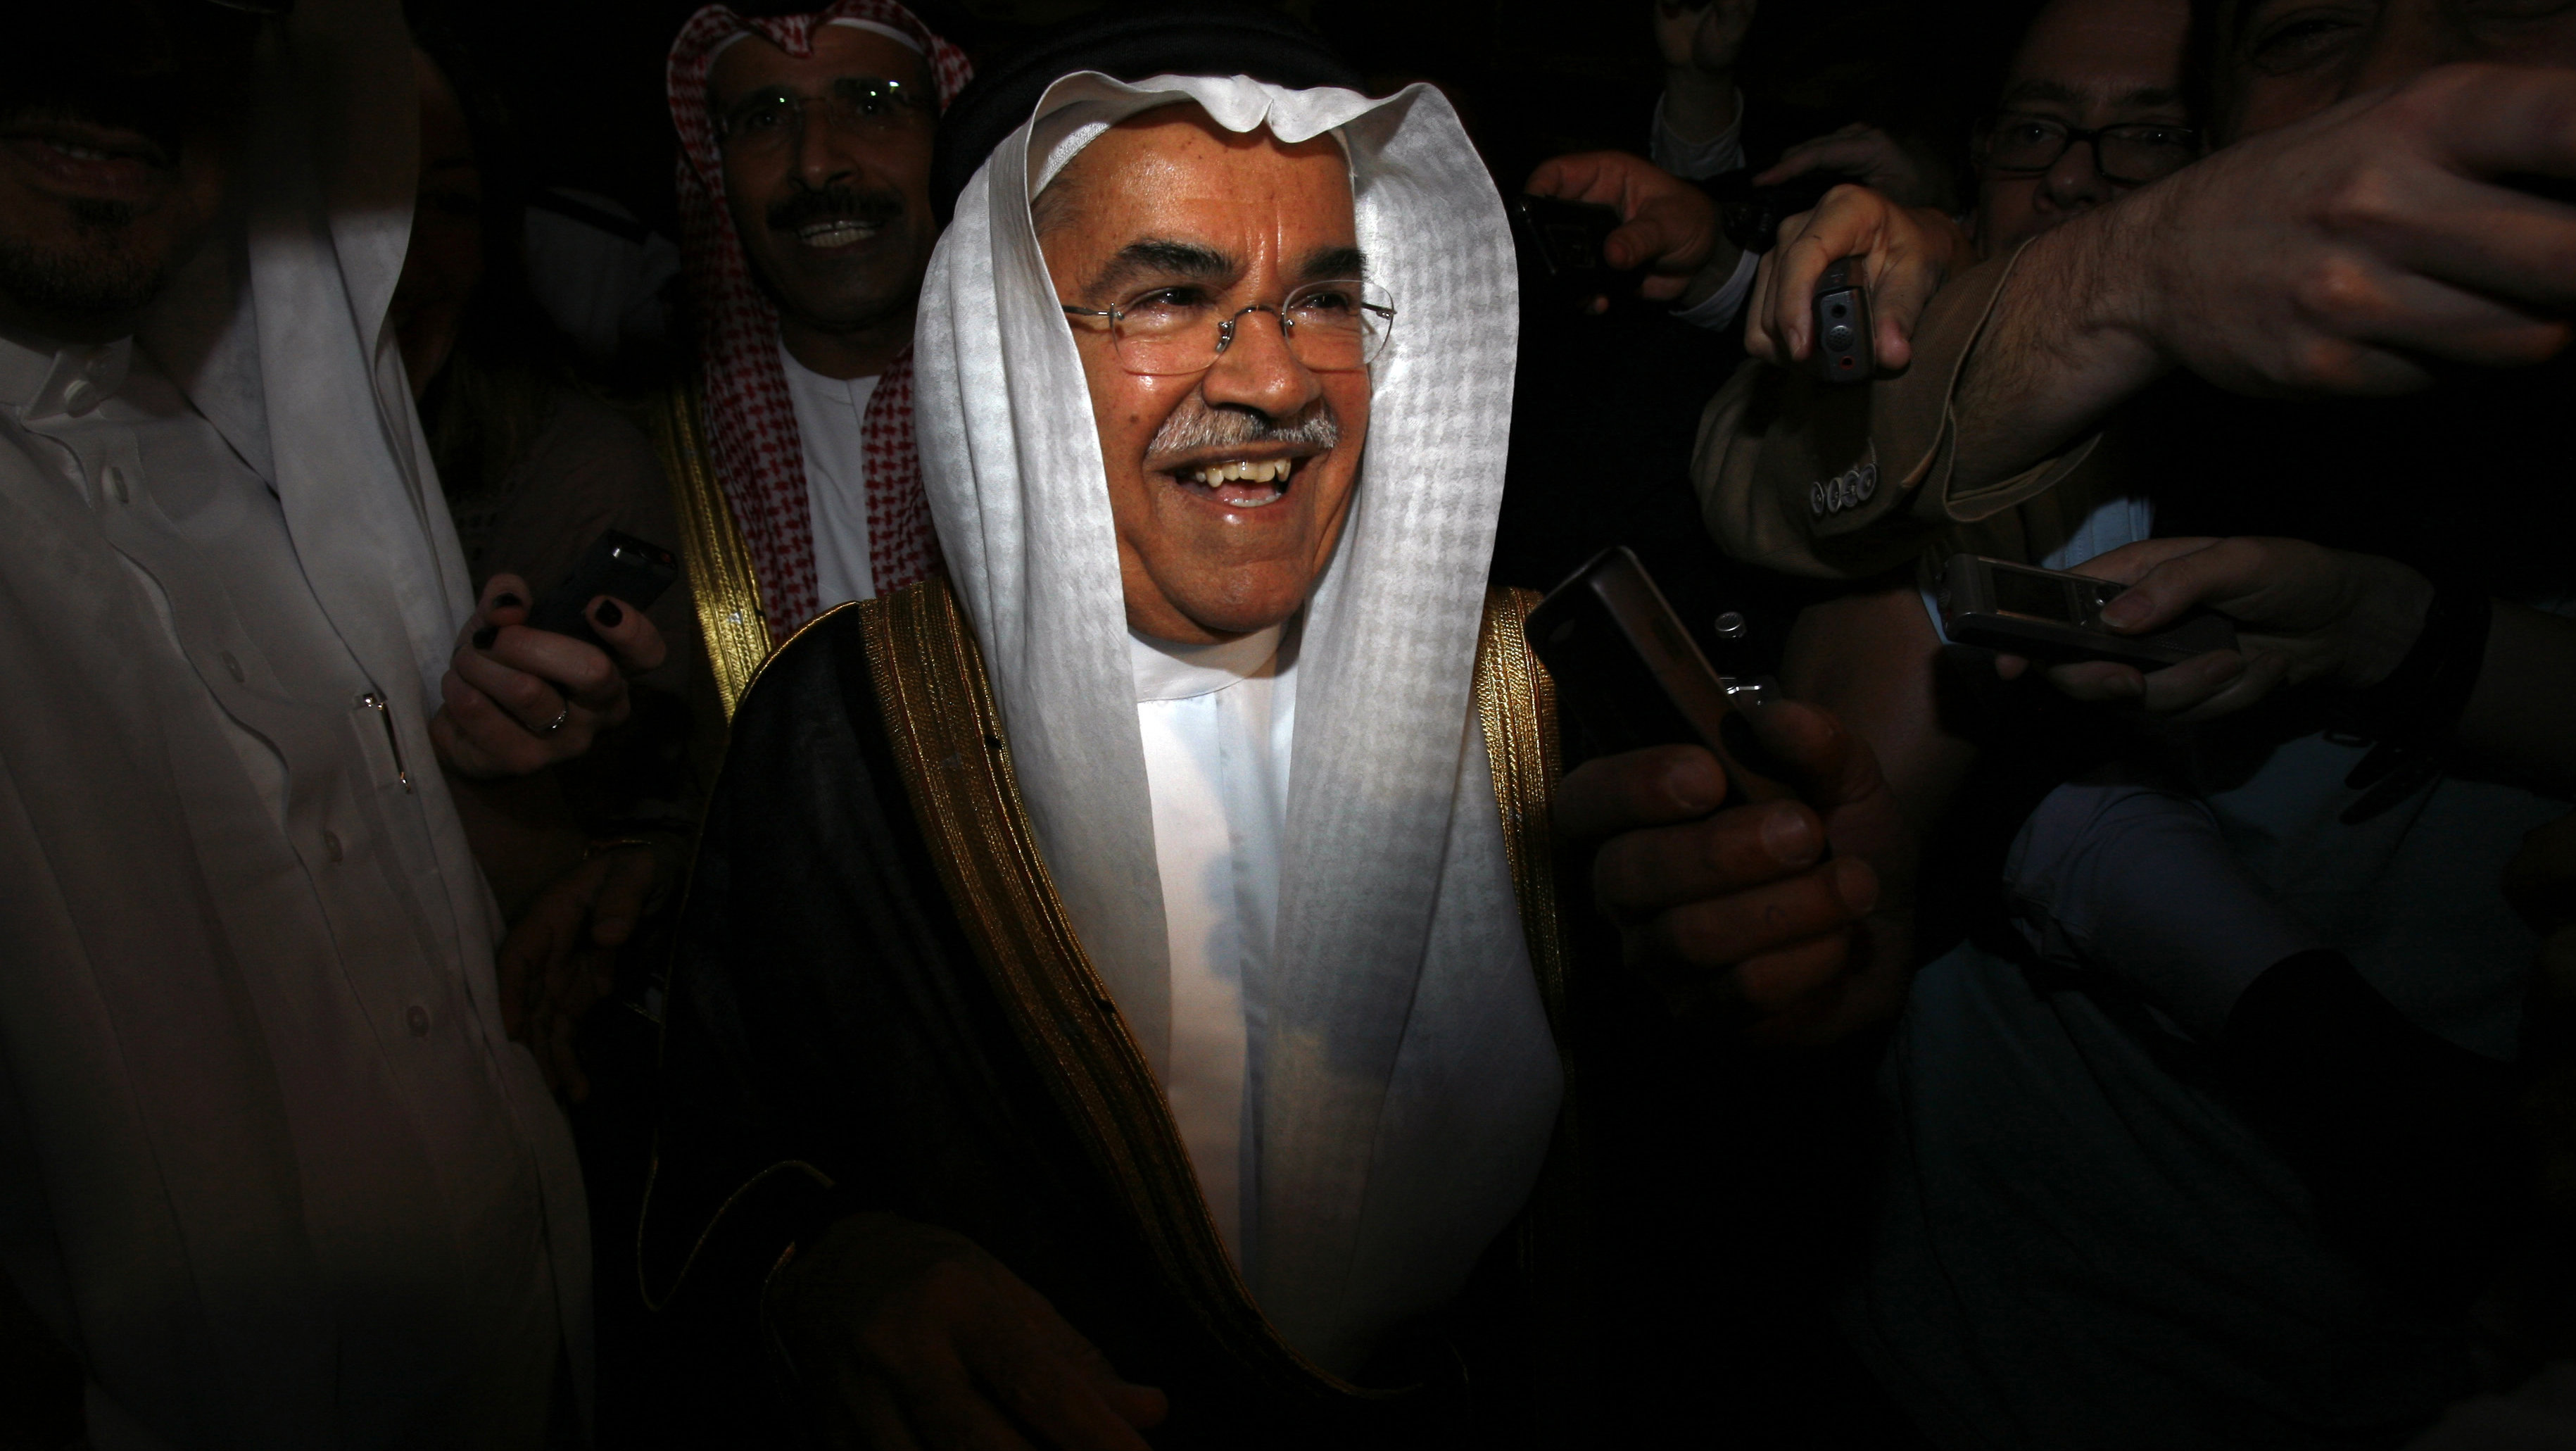 Saudi's Oil Minister Ali al-Naimi arrives at Emirates palace to attend the OPEC meeting in Abu Dhabi December 3, 2007.